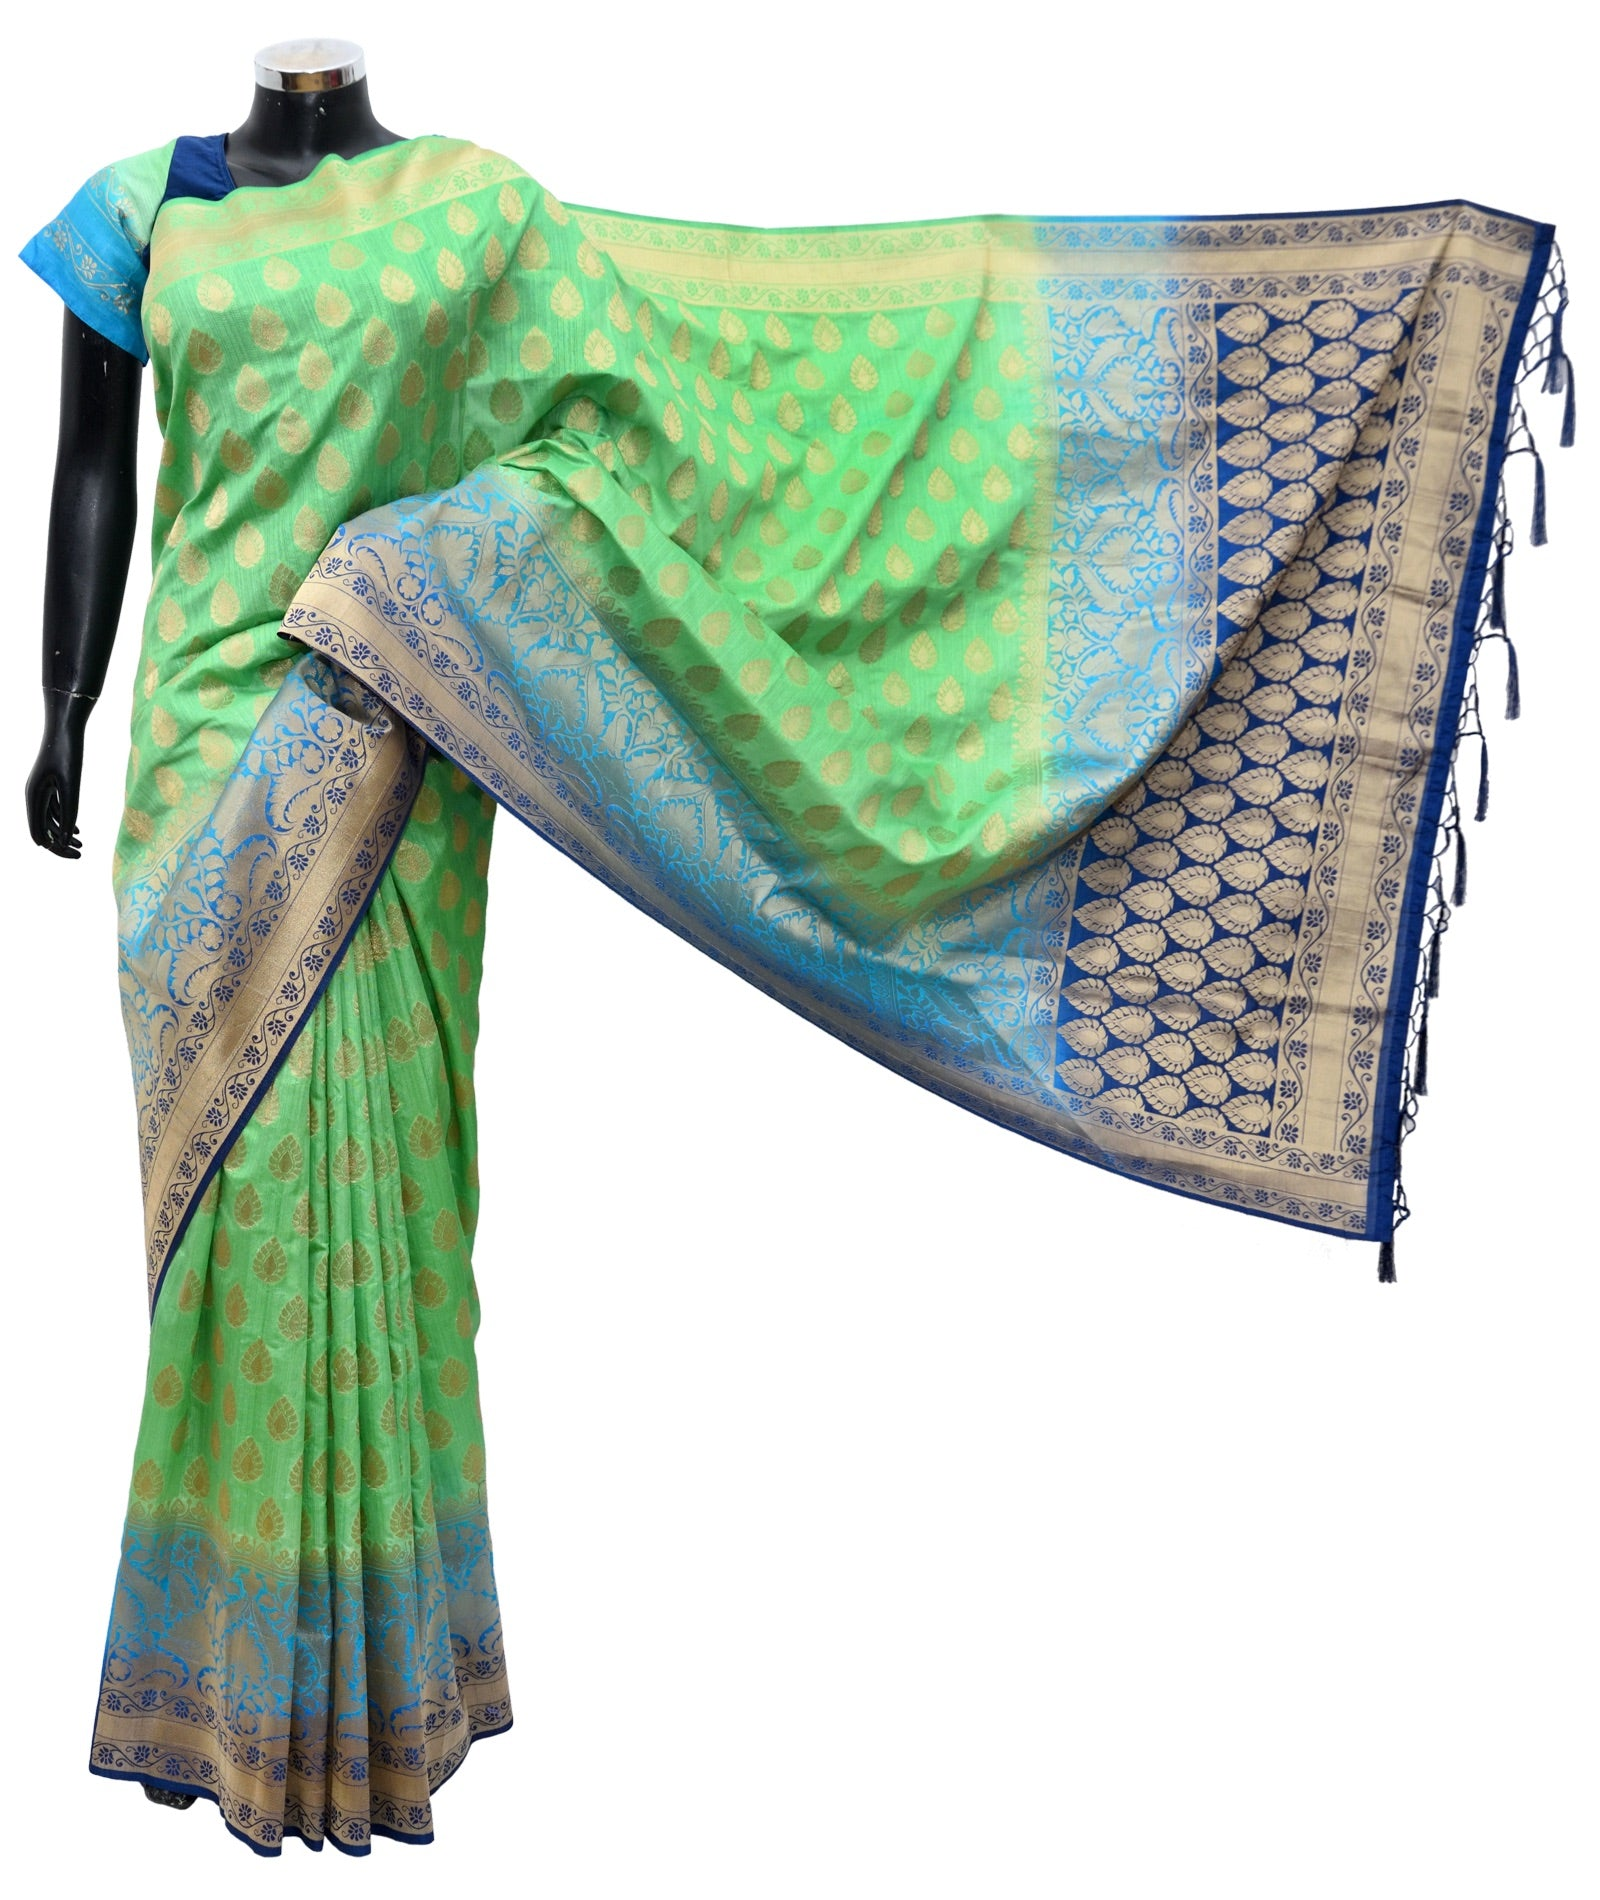 Banarsi silk saree Fdn1005-361